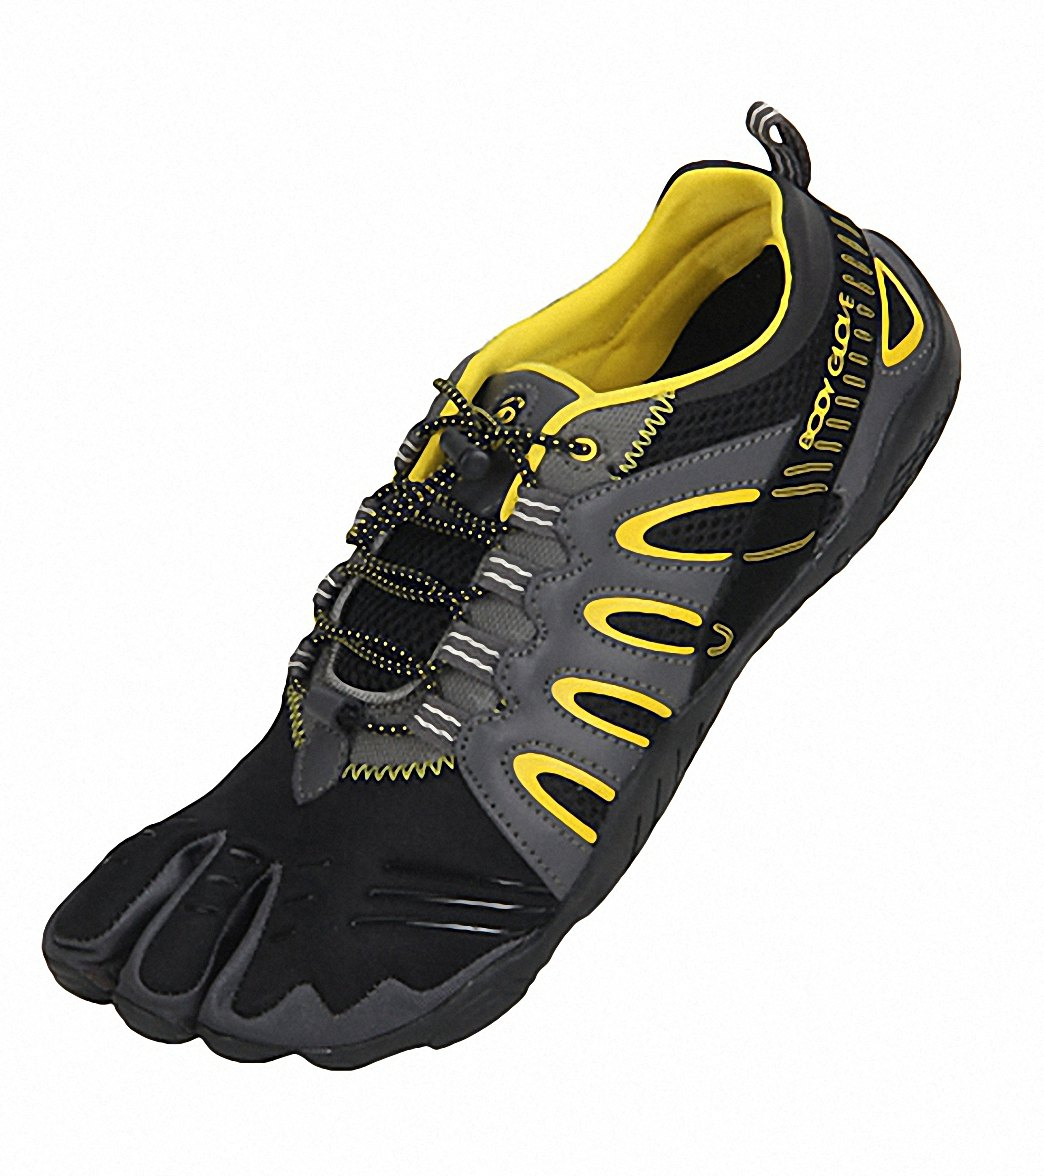 a77d5ae61cdf Body Glove Men s 3T Barefoot Warrior Water Shoe at SwimOutlet.com ...